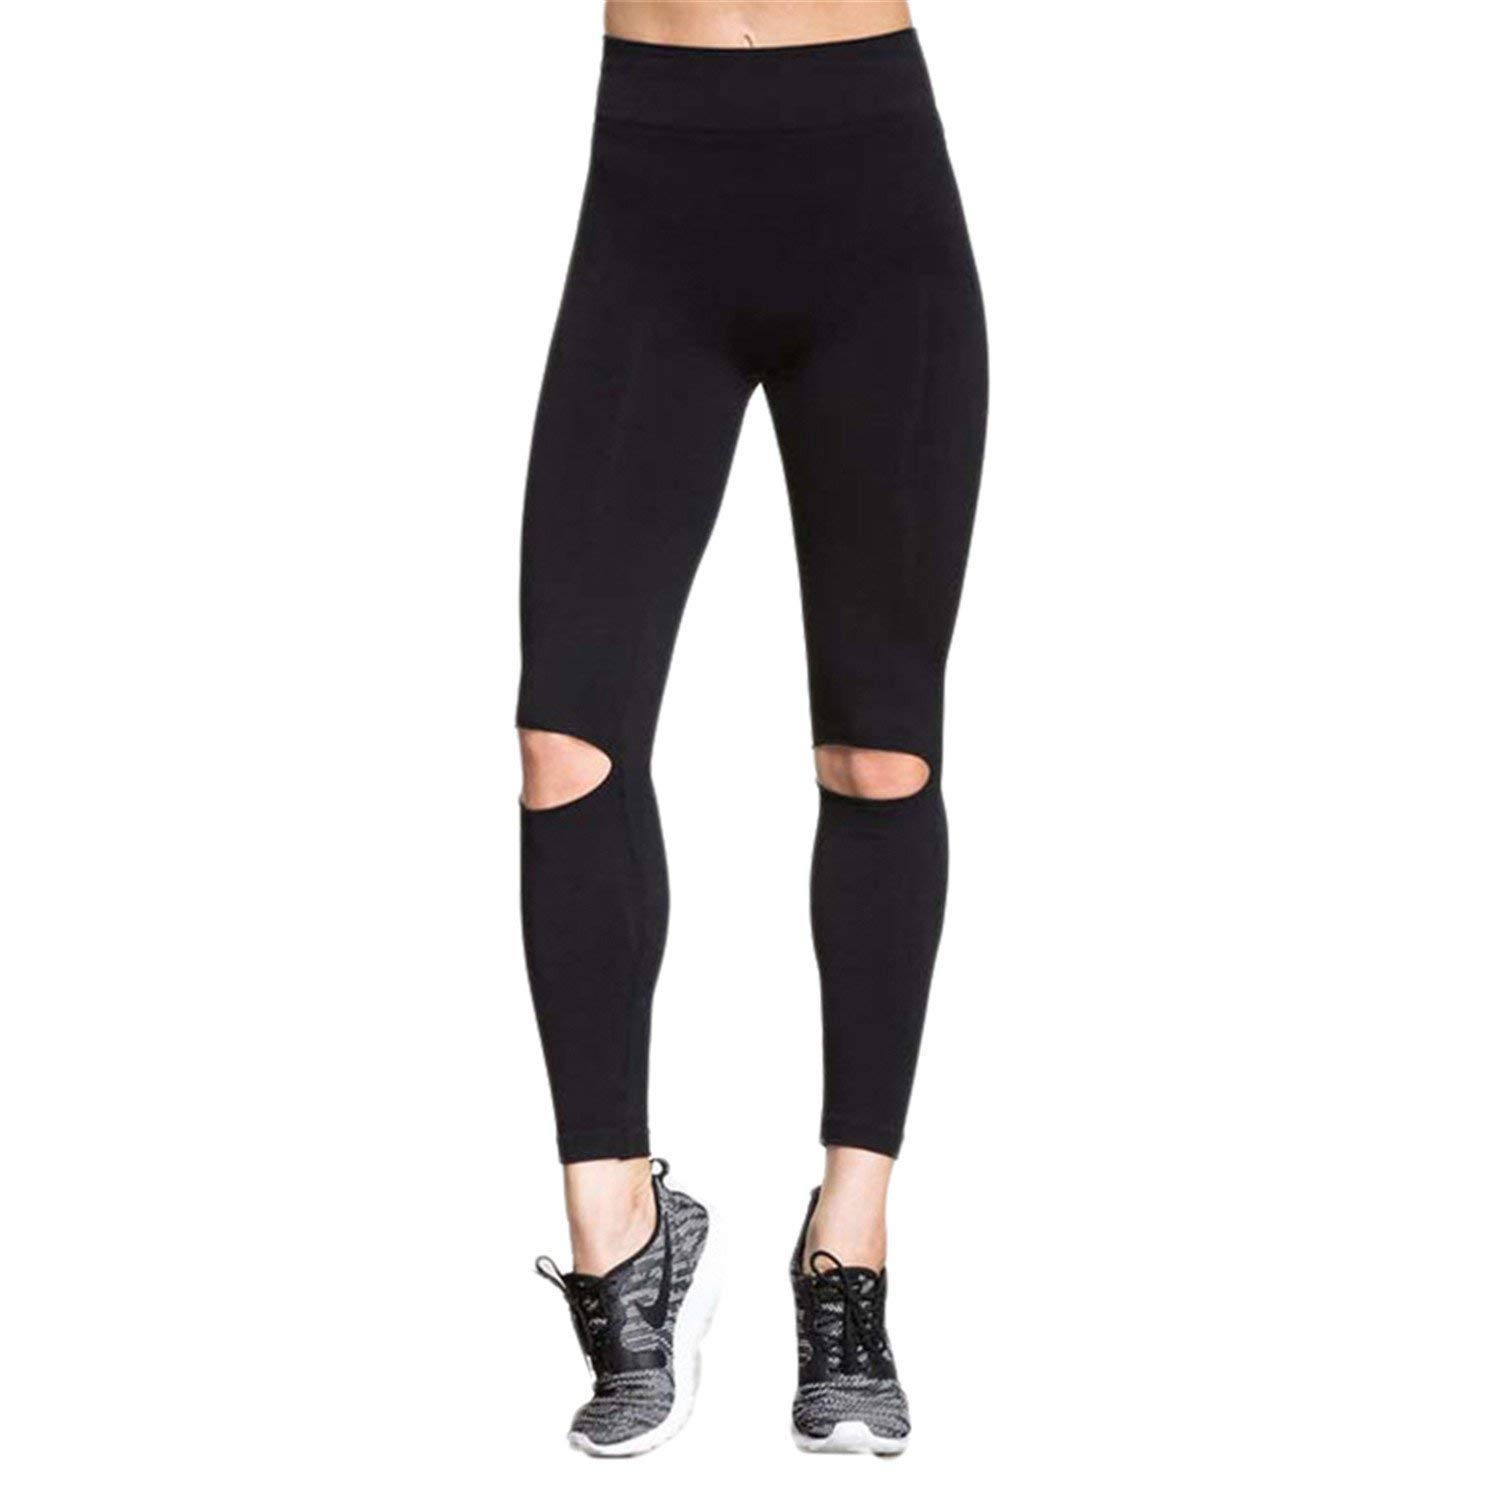 e35157bba11 Get Quotations · Kebinai Black Leggings Women Fashion Knee Hole Leggings  Pants Trousers Elasticity Fitness Leggings